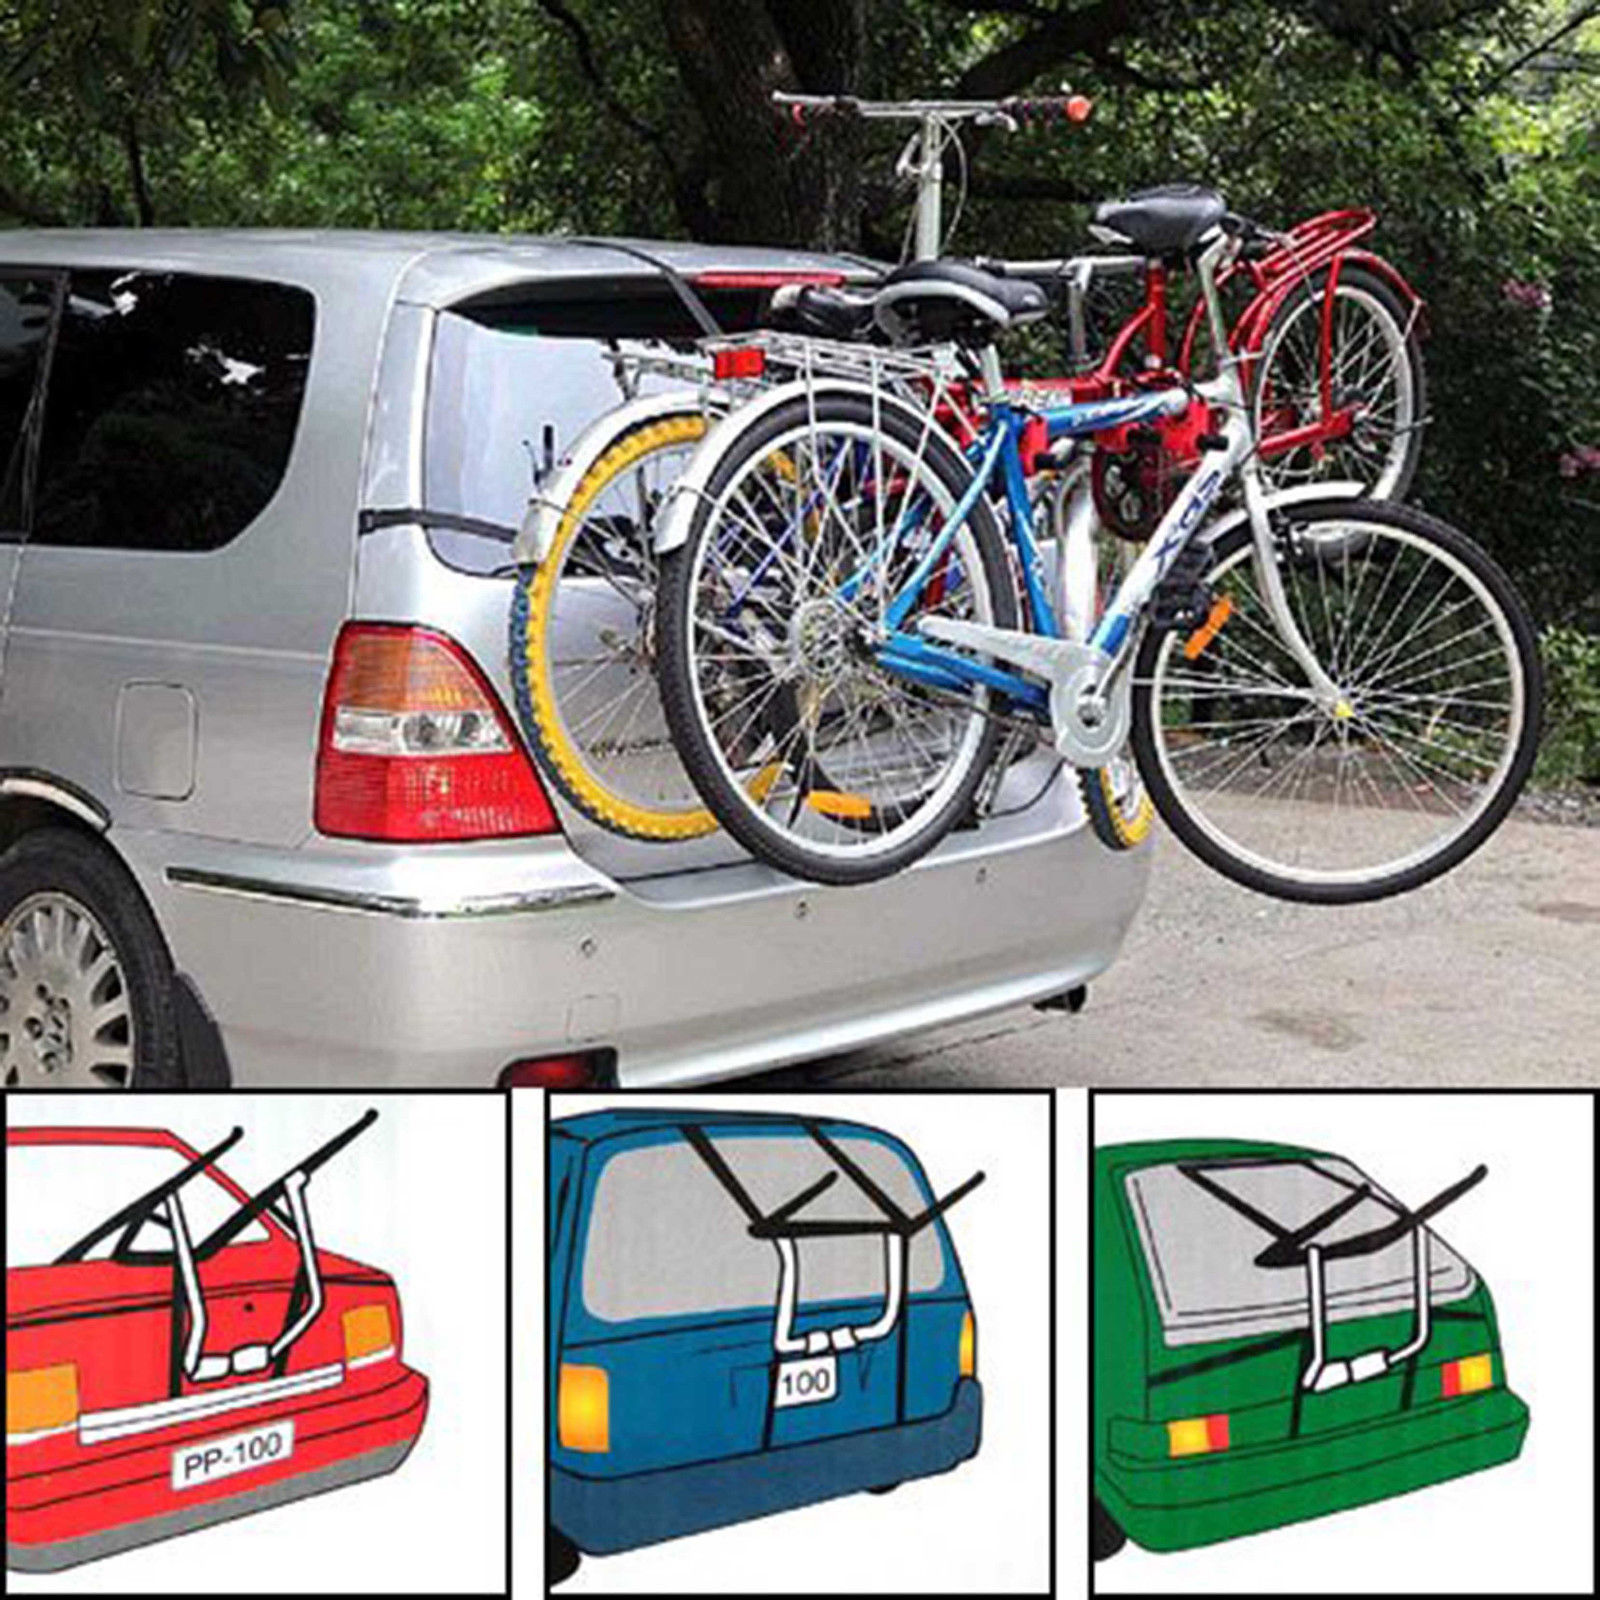 p suv bicycle carrier of hitch picture for duty car holder rack receiver truck bike s heavy